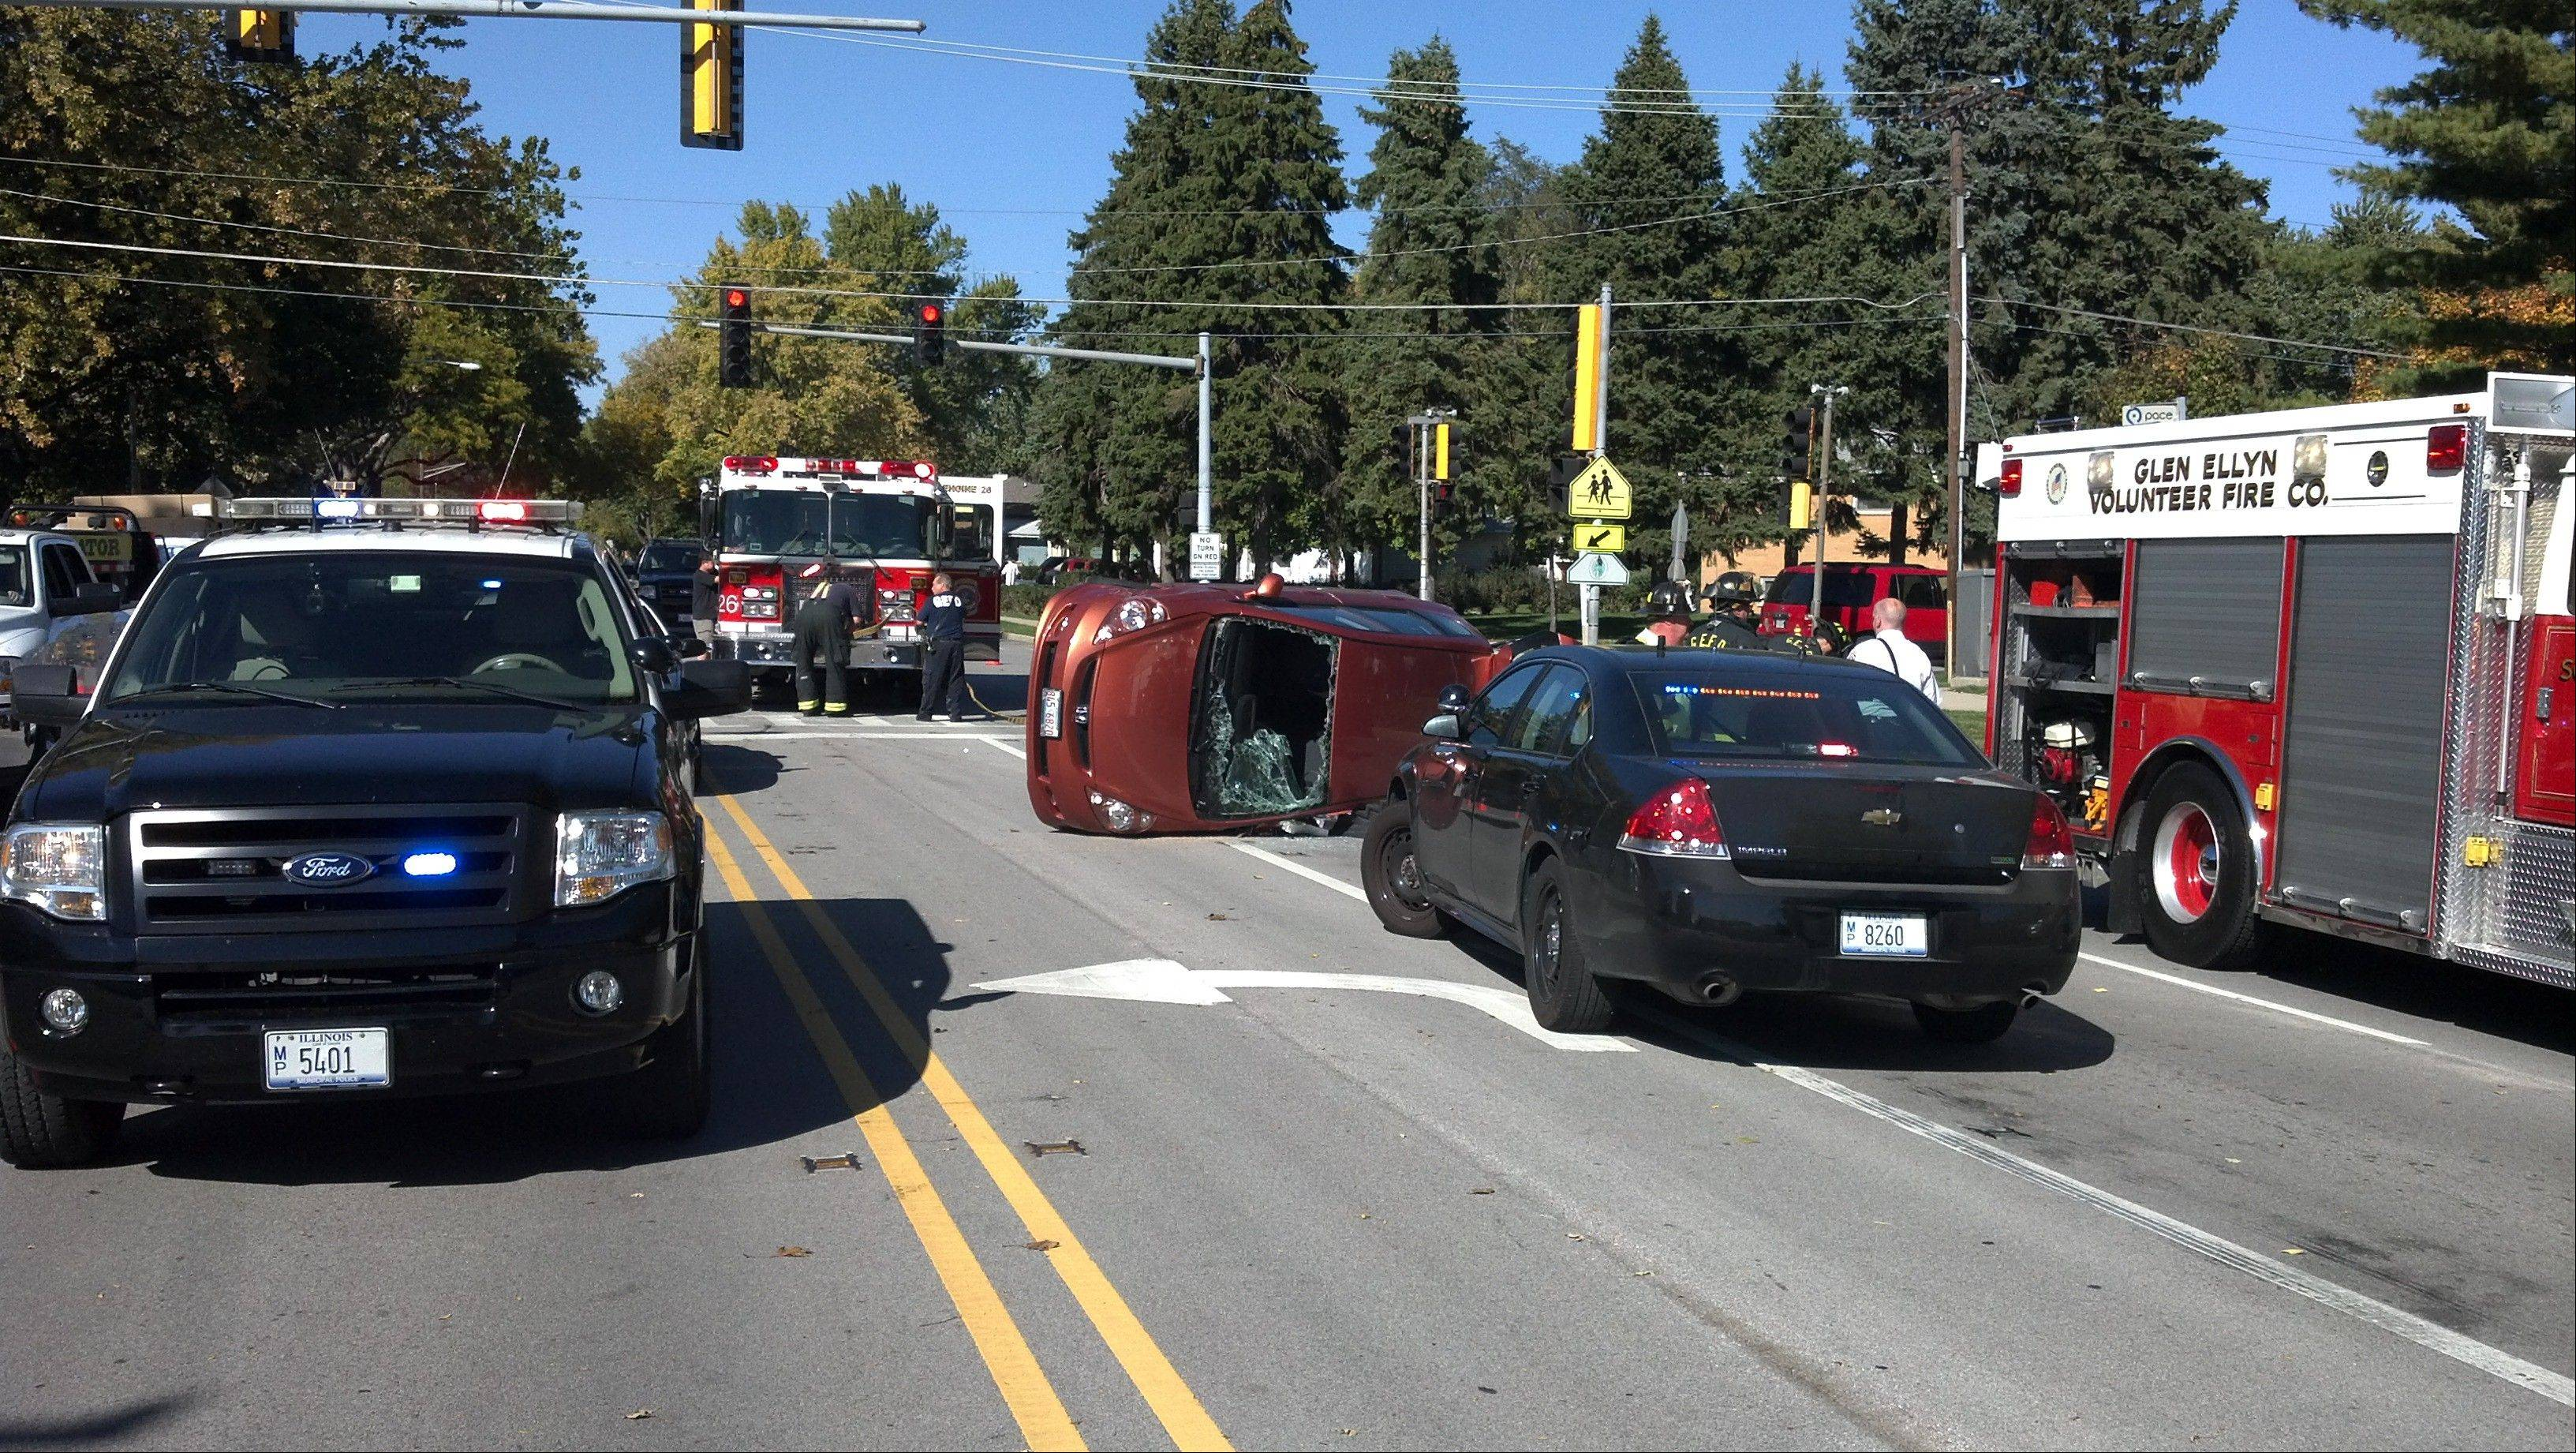 One person was injured in a Tuesday afternoon crash in Glen Ellyn at the intersection of Park Boulevard and Sheehan Avenue.